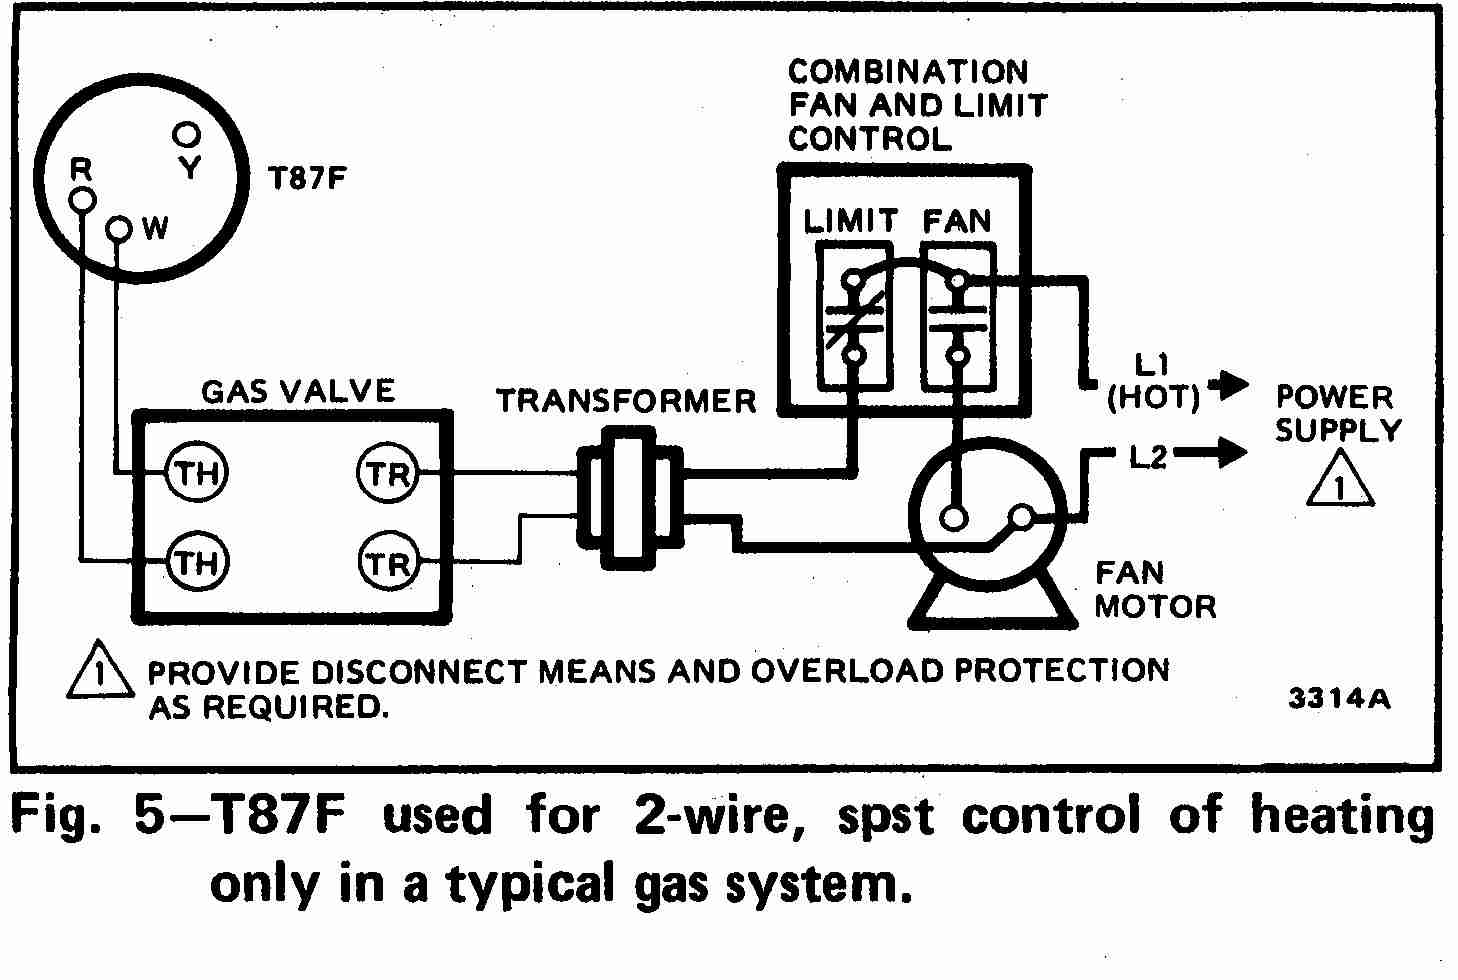 Wiring Diagram For Rheem Hot Water Heater from inspectapedia.com